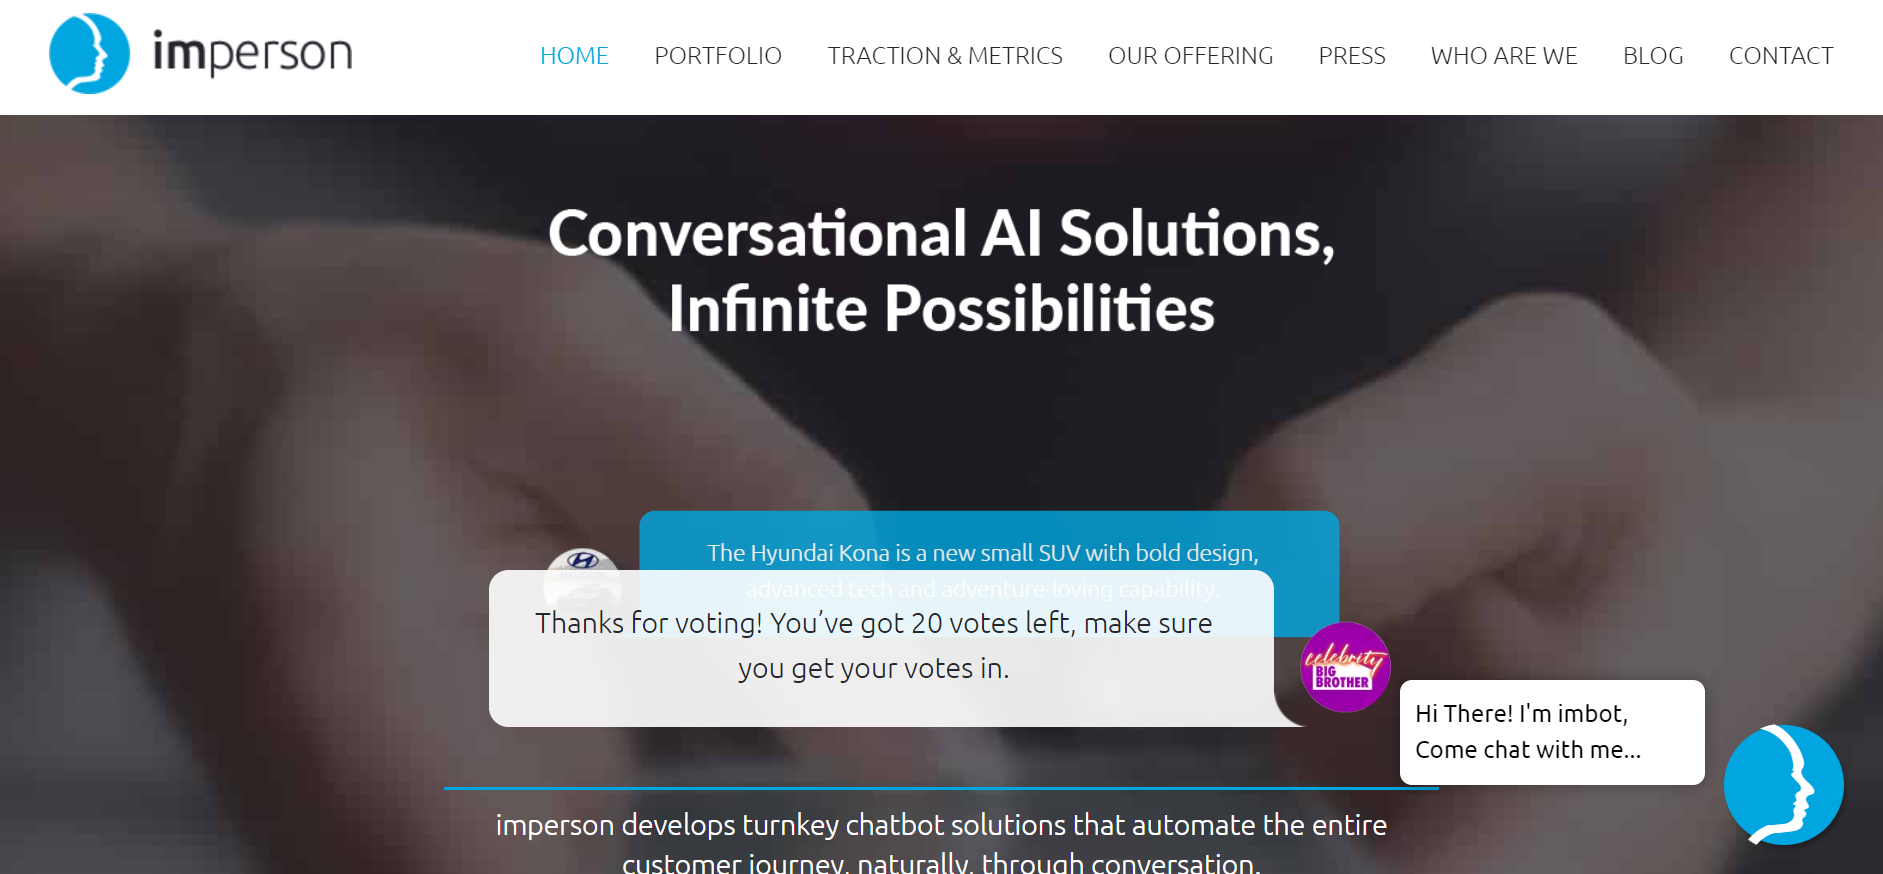 best chatbots for marketing - Imperson